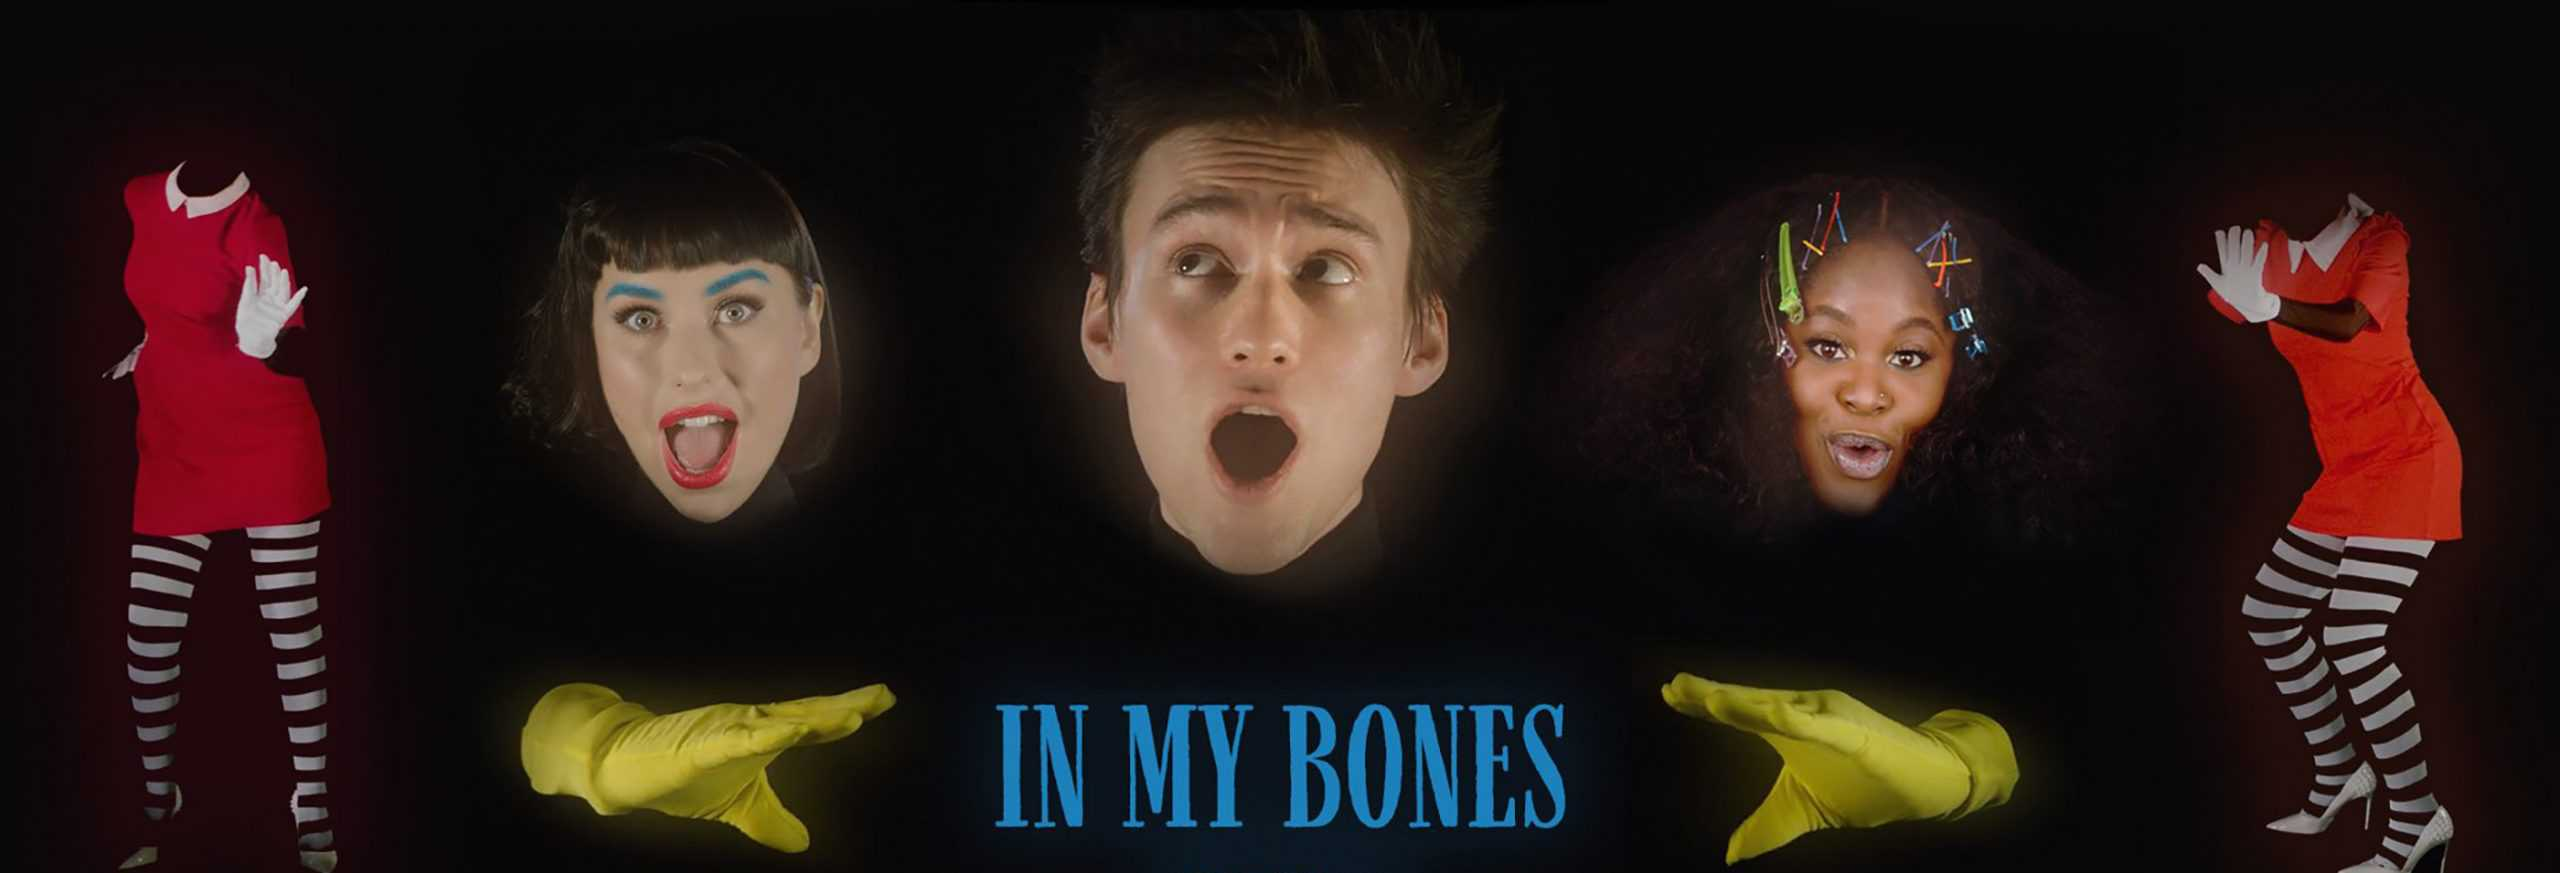 "Jacob Collier ""In My Bones"""